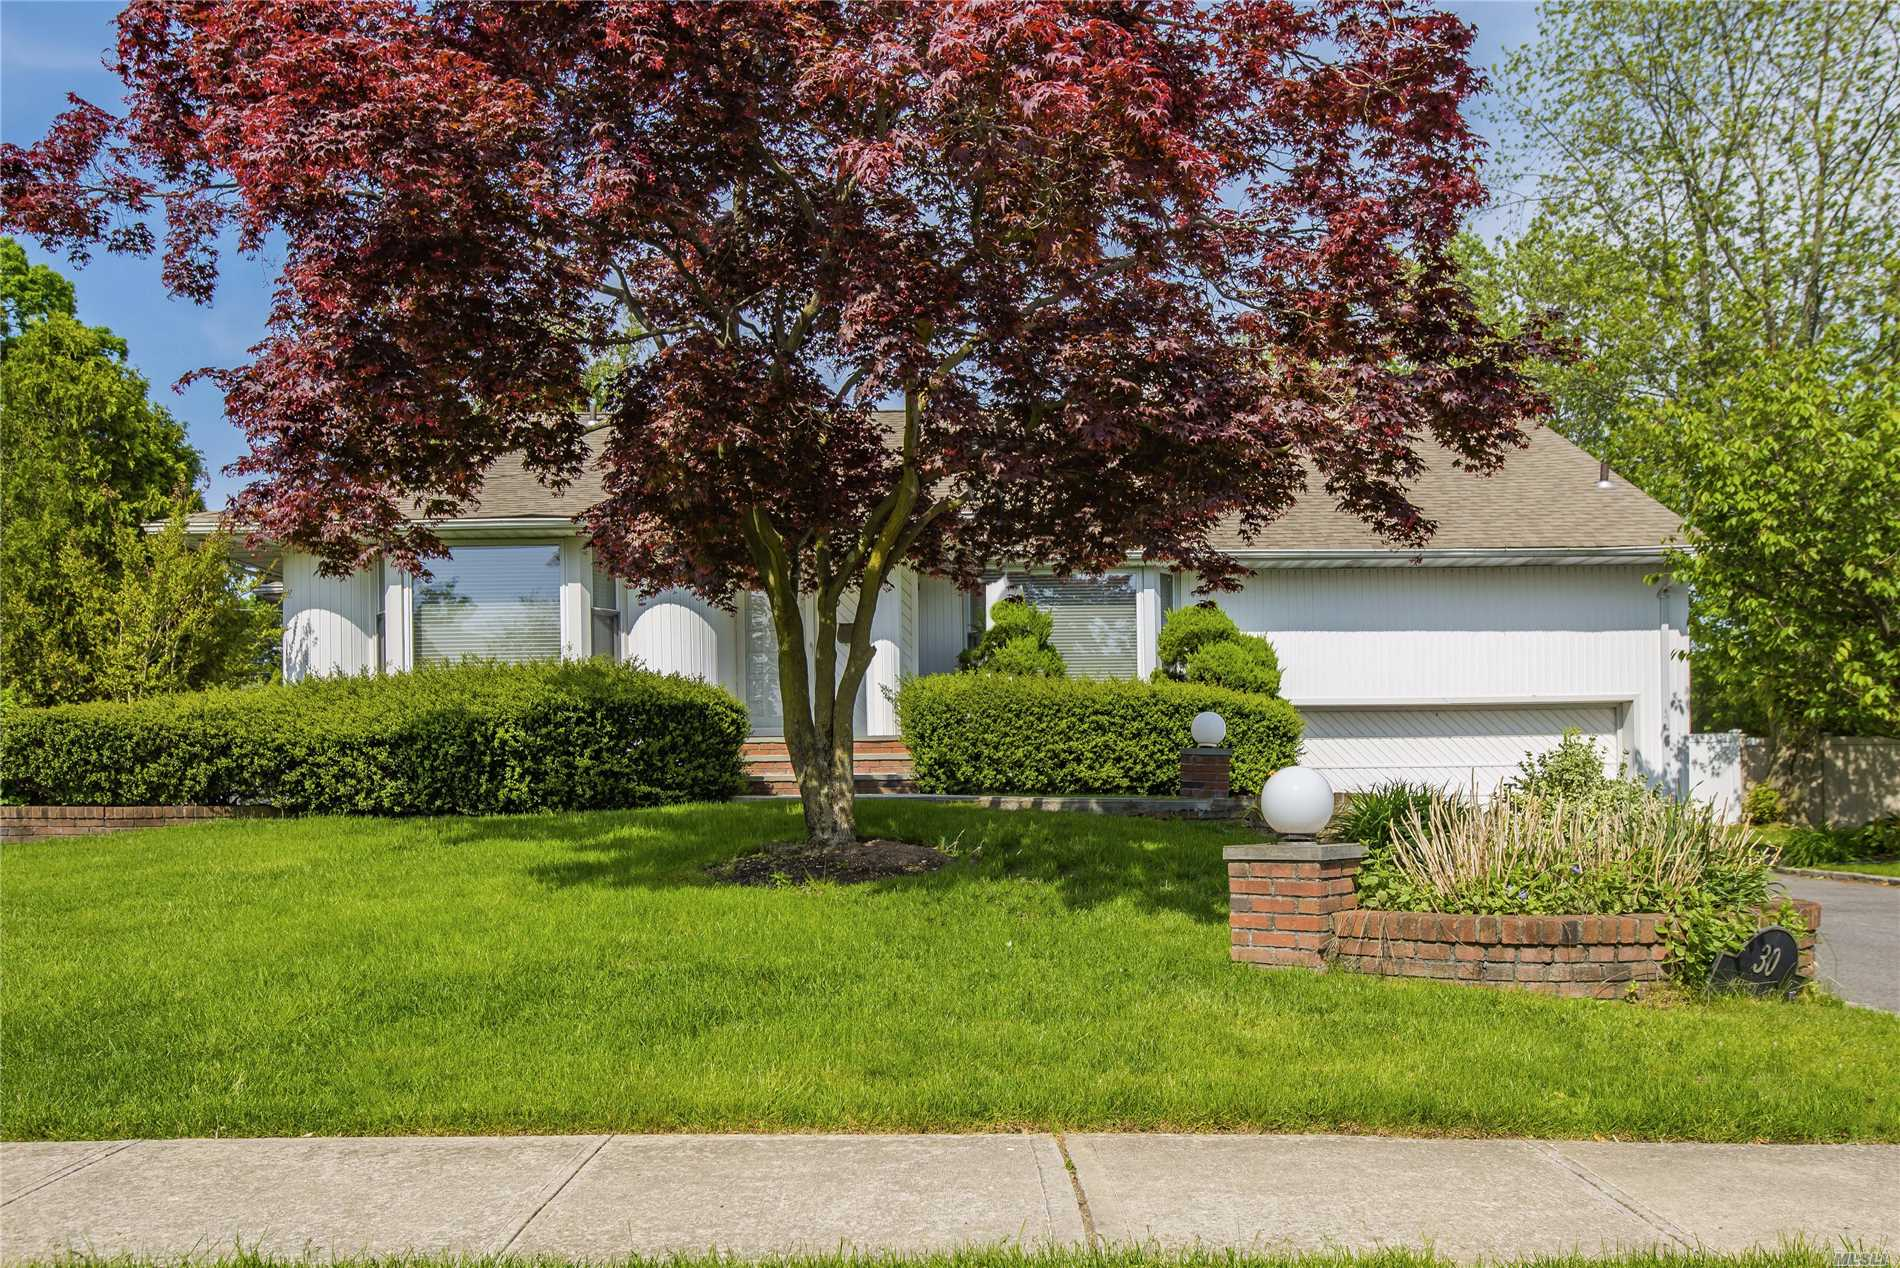 Largest Riviera model in East Birchwood! Fall in love with this inviting 4-5 bedroom (easy conversion back to 5 BR) 3 full bathroom home nestled on a deep park like backyard complete with an in-ground salt water pool! Highlights including a gourmet eat in kitchen, spacious living room with vaulted ceilings, newer hardwood floors and wood burning fireplace, bonus ground floor master suite, spacious den with fireplace, 2 car heated garage, GAS line in front of house and Jericho schools.